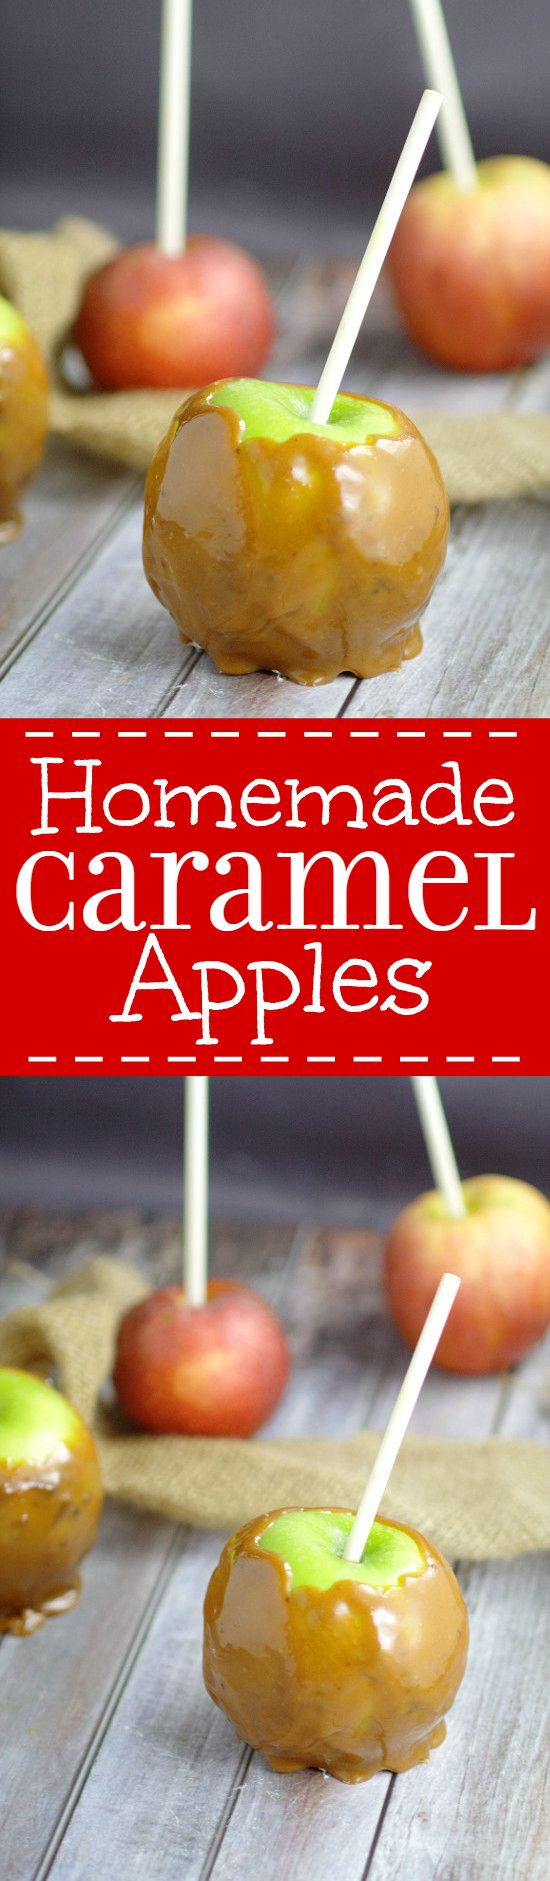 Homemade Taffy Apples are a perfect Fall treat with homemade, gooey and sweet caramel wrapped around fresh, tart apples that the whole family will love. Caramel Apples from scratch are amazing! Love this for a Fall dessert recipe.